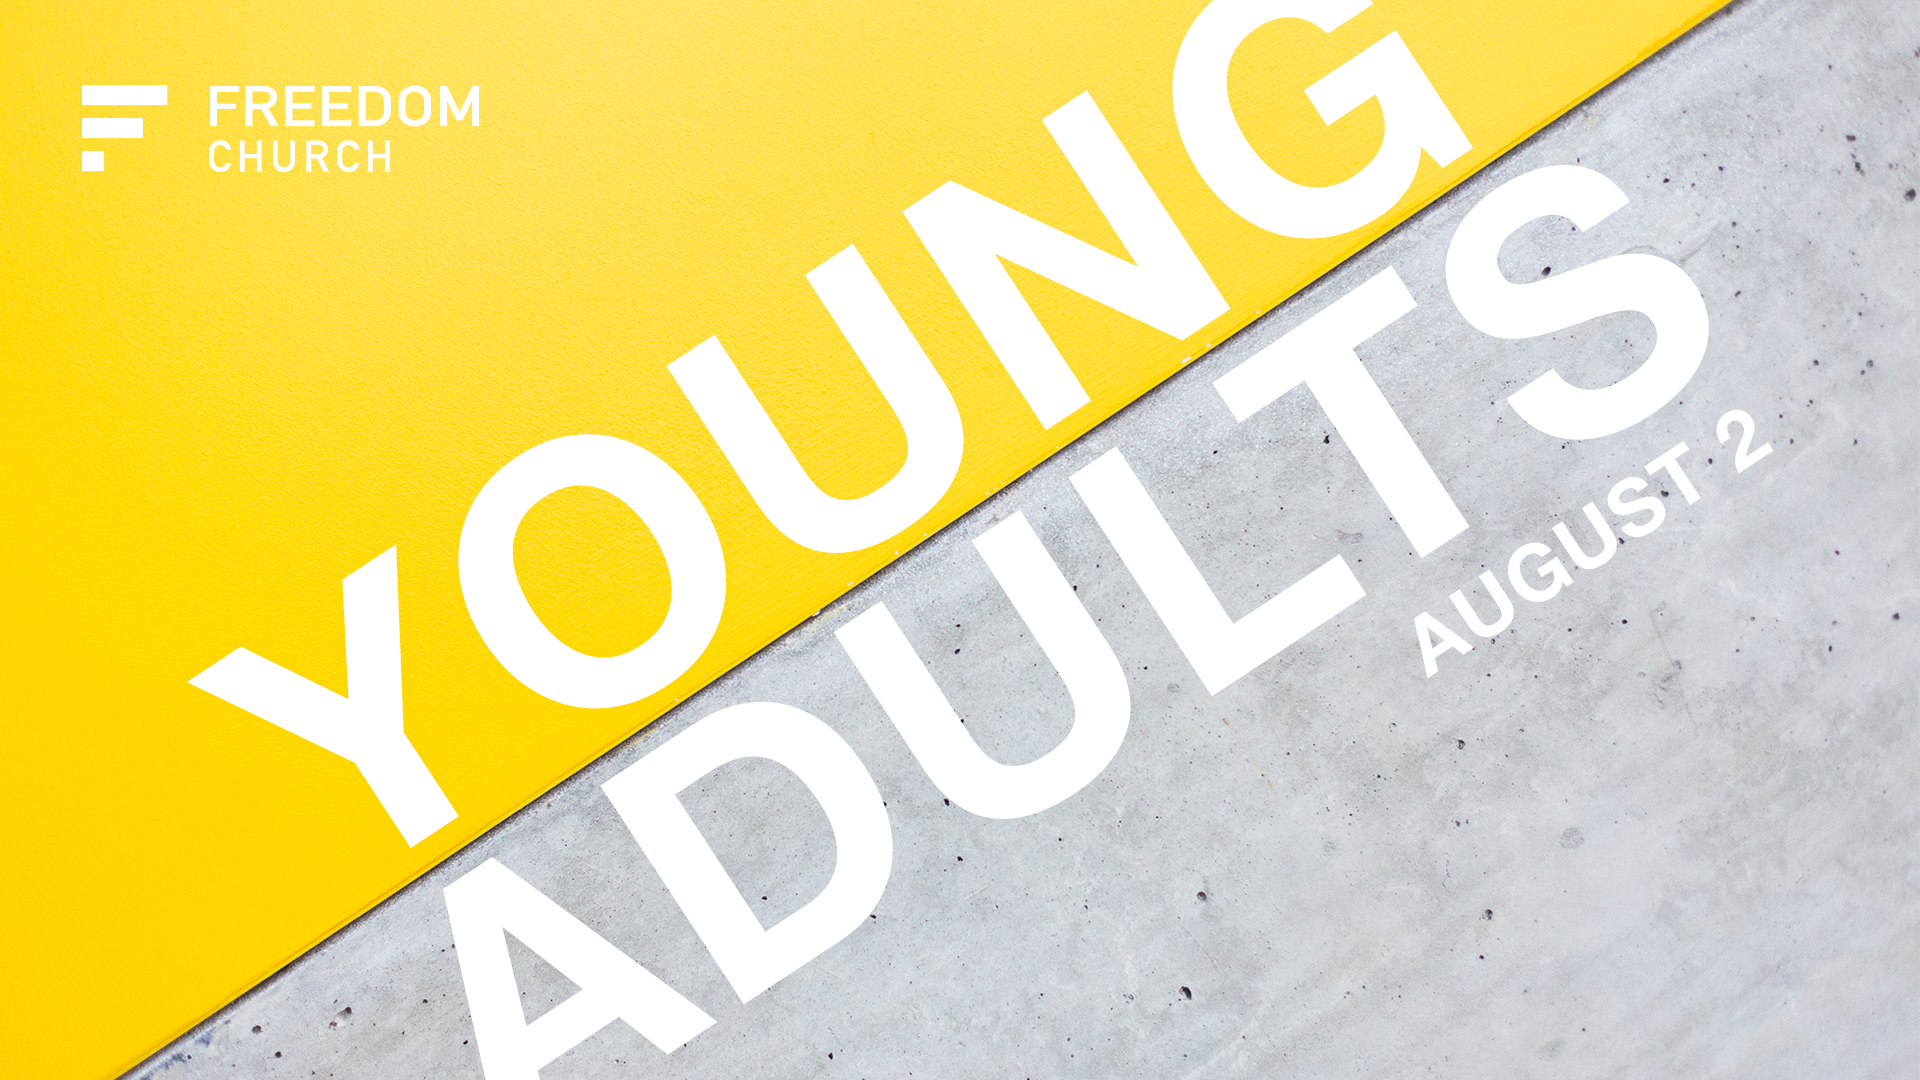 Our next Young Adults service is Thursday night, August 2nd at 7pm. If you're 18 to 30ish, come join us at Young Adults service for coffee, worship, and a word. This is a great time of community here at Freedom!